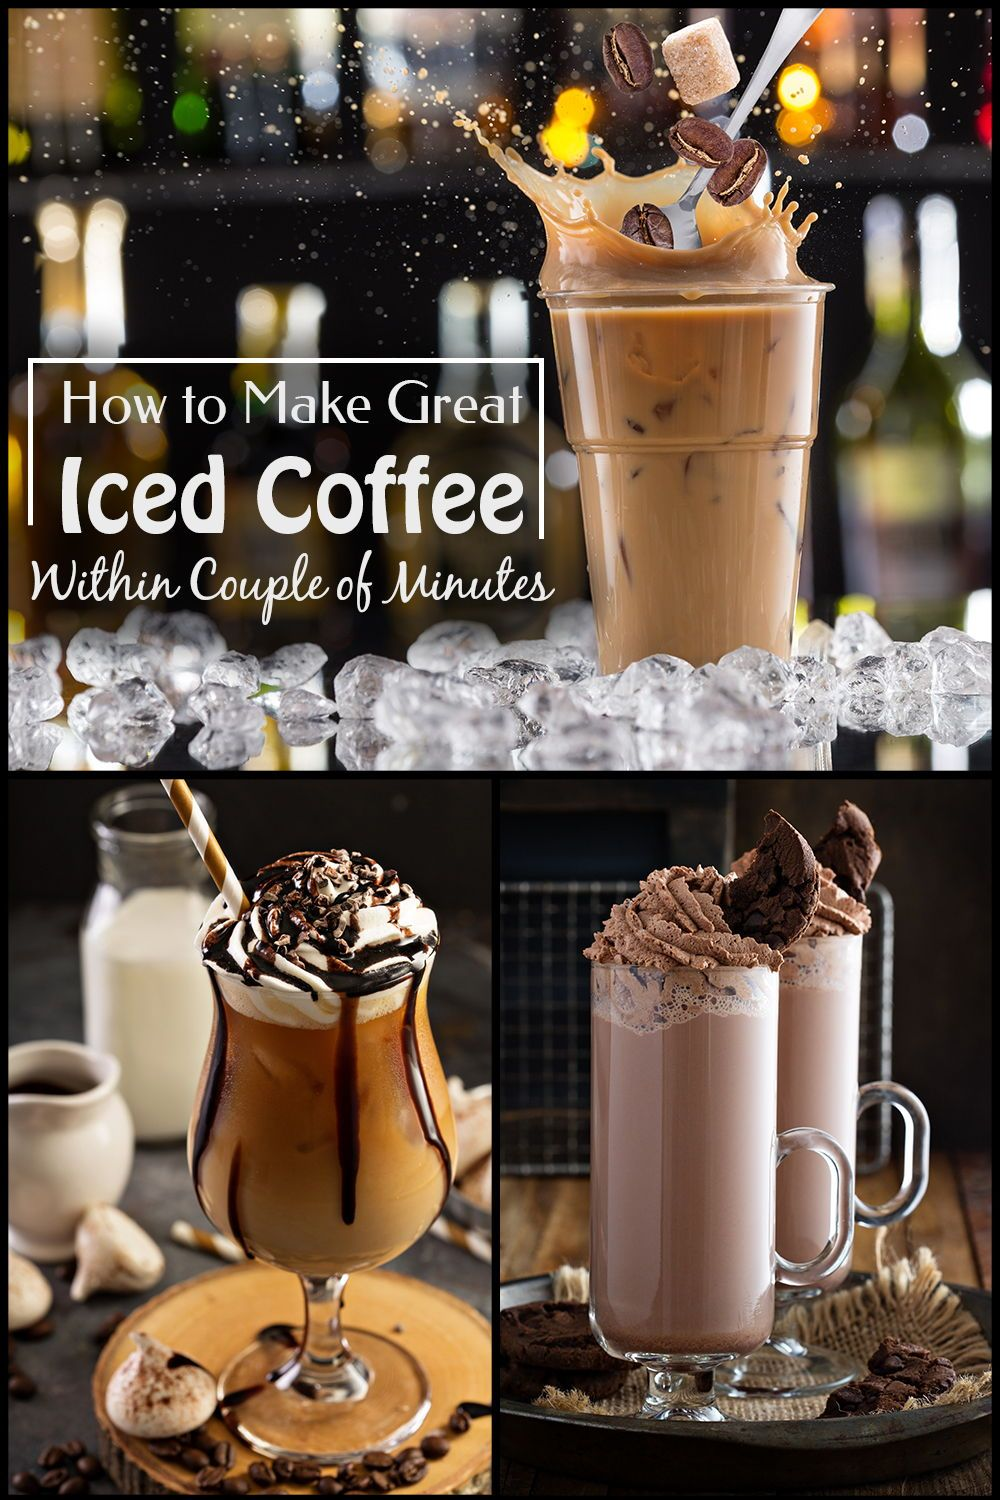 Make a Great Iced Coffee Within Couple of Minutes Iced